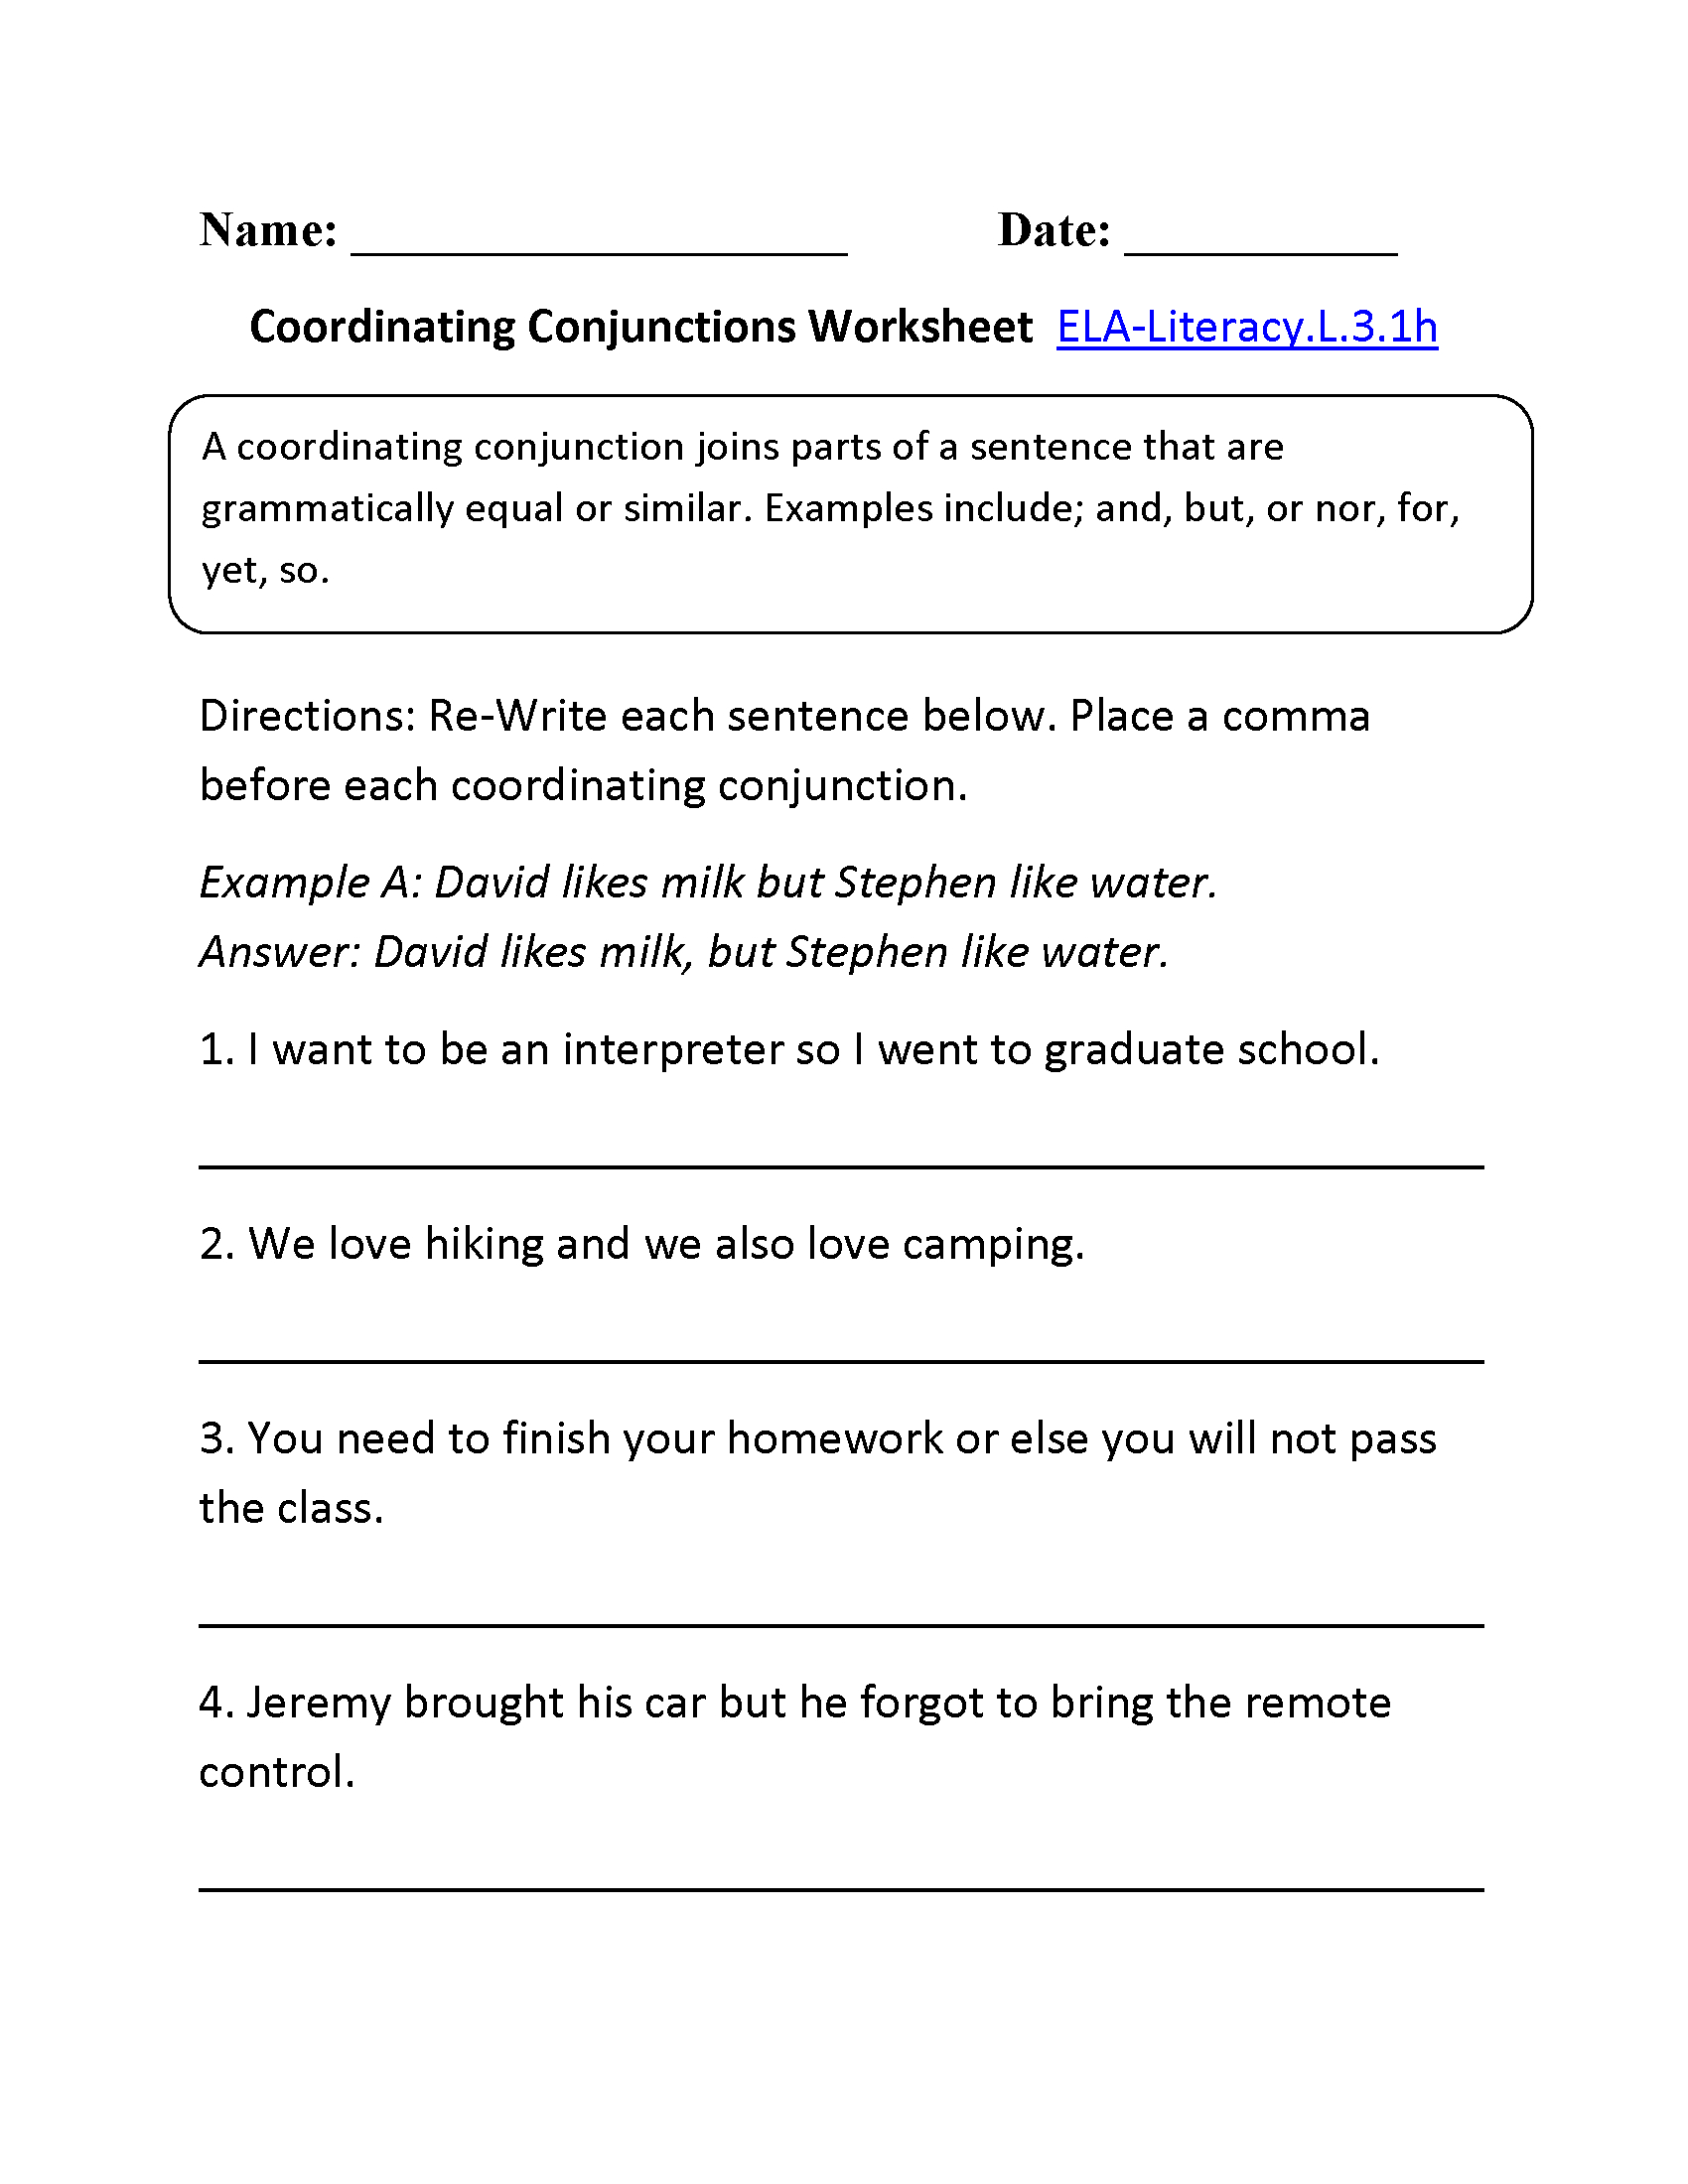 Coordinating Conjunctions Worksheet 1 (L.3.1) | L.3.1 | English | 3Rd Grade English Worksheets Printable